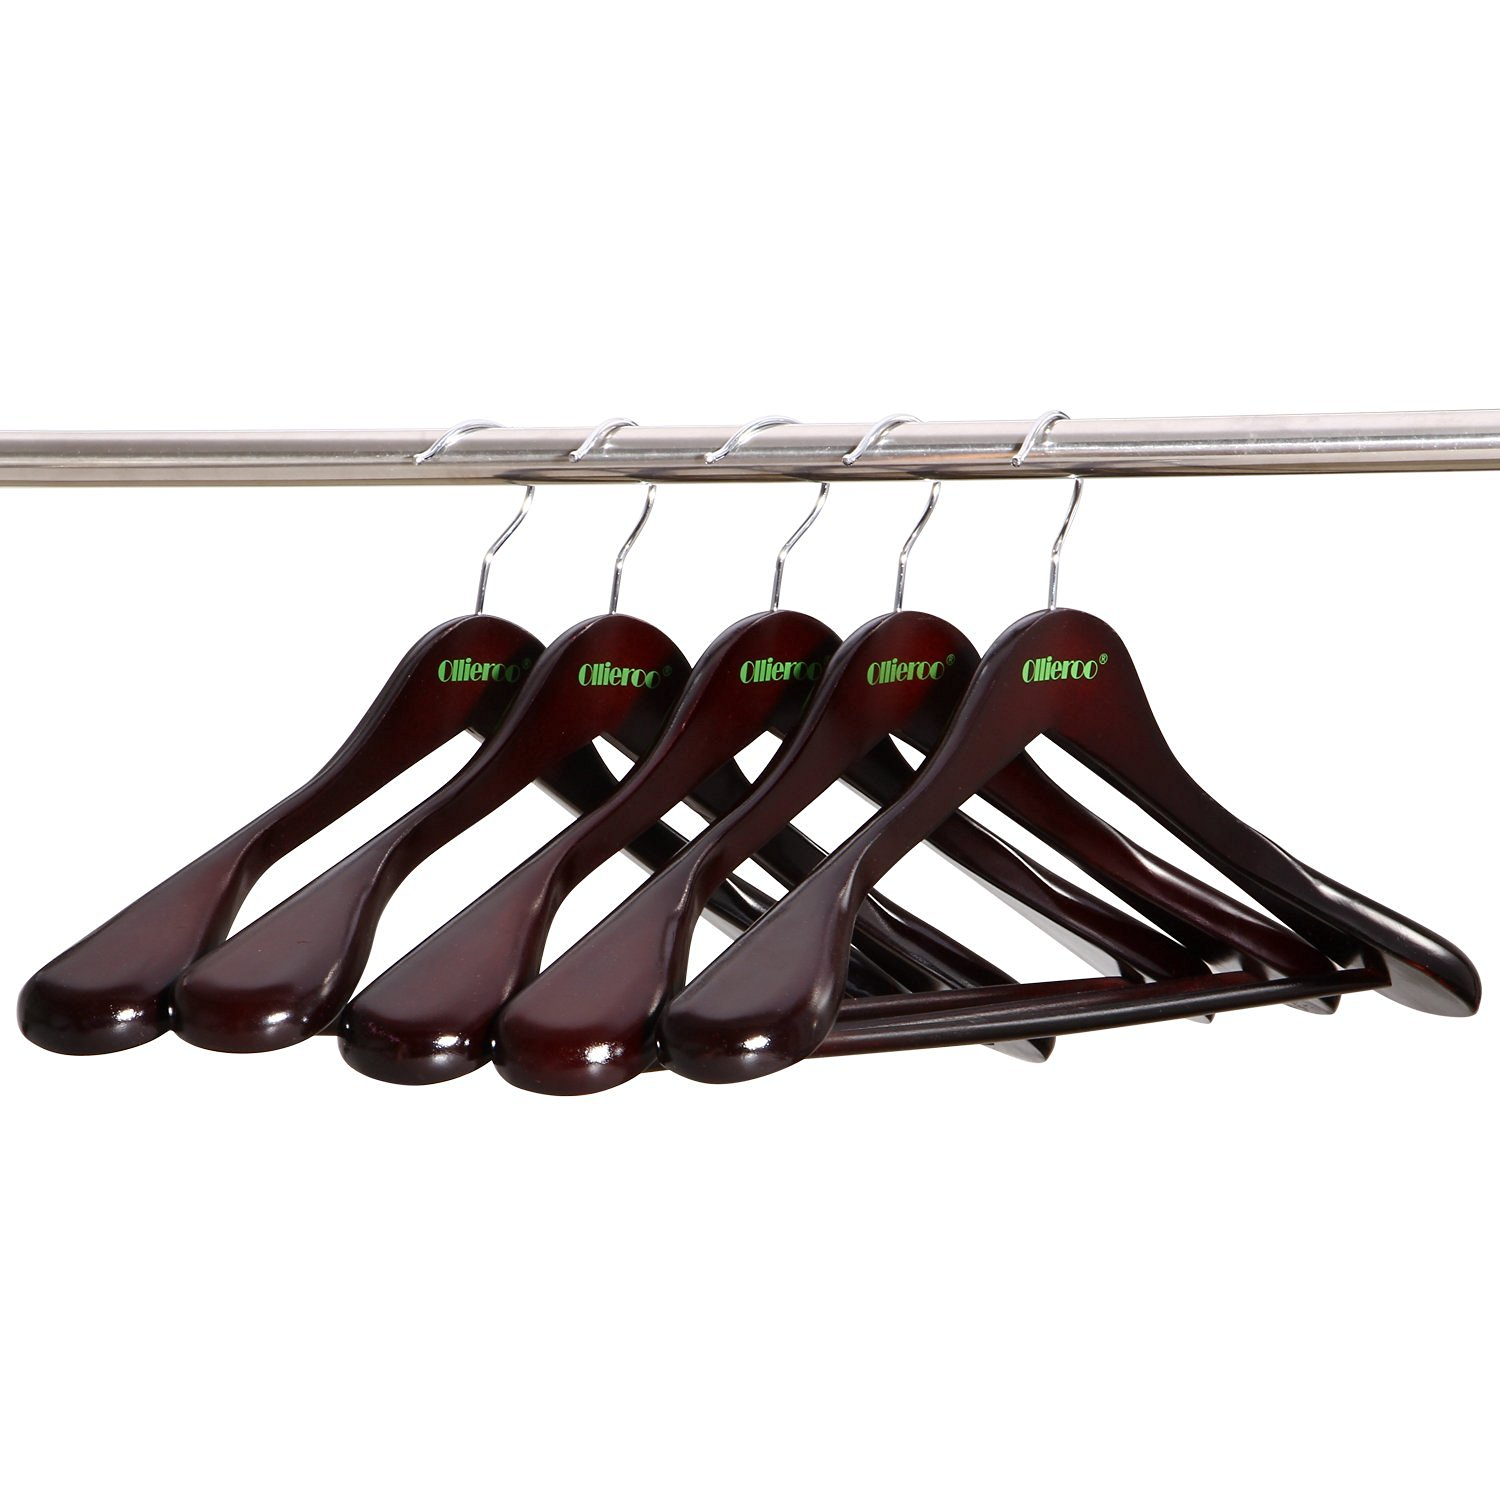 Ollieroo 5 PK Solid Gugertree Wooden Clothes Hanger Extra-Wide Shoulder Suit Hangers with Polished Chrome Hook Walnut Finish